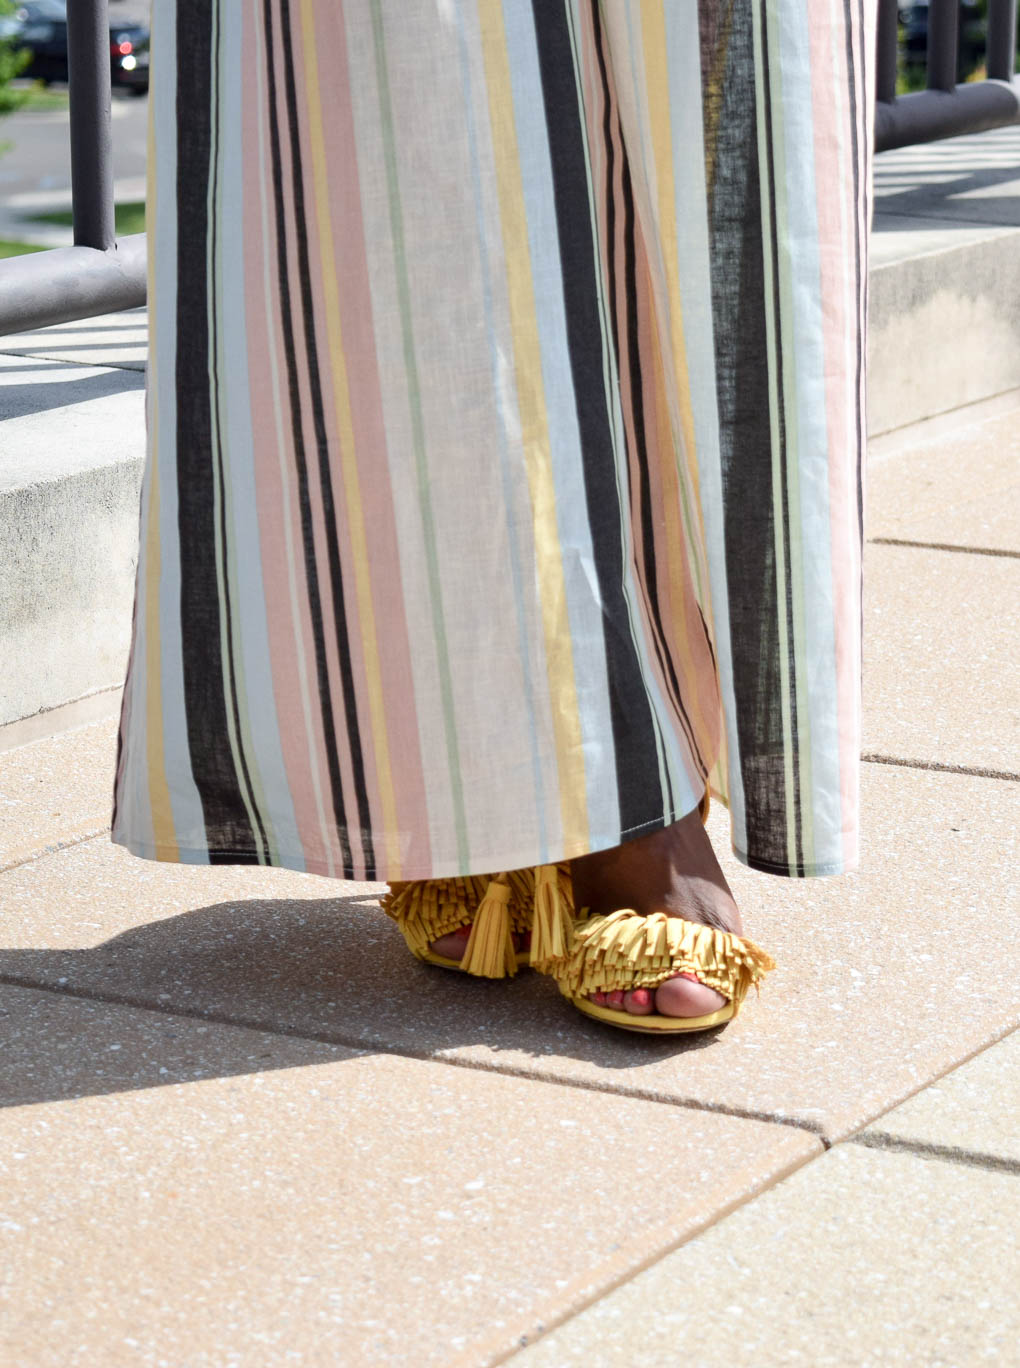 Style-files-target-Women Palazzo-Pant- Striped-  Xhilaration-Xhilaration-striped-wideleg-linen-pants-forever21-crop-racerback-tank-yellow-tayrey-fringe-heels-justfab-yellow-fringe-heels-how-oohlalablog-7